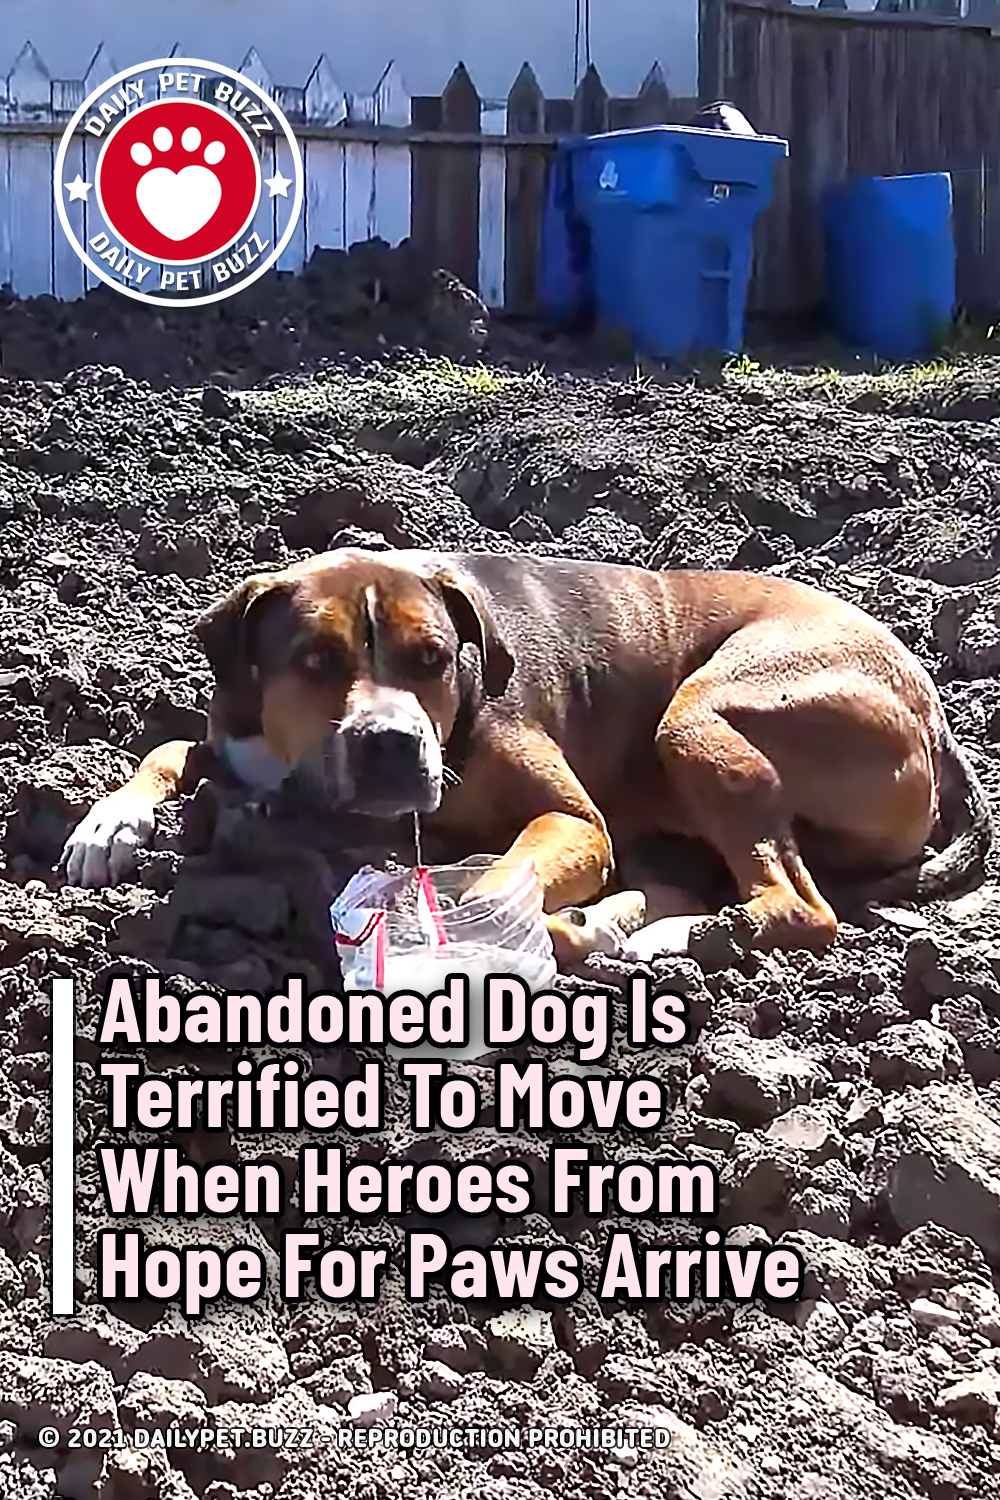 Abandoned Dog Is Terrified To Move When Heroes From Hope For Paws Arrive